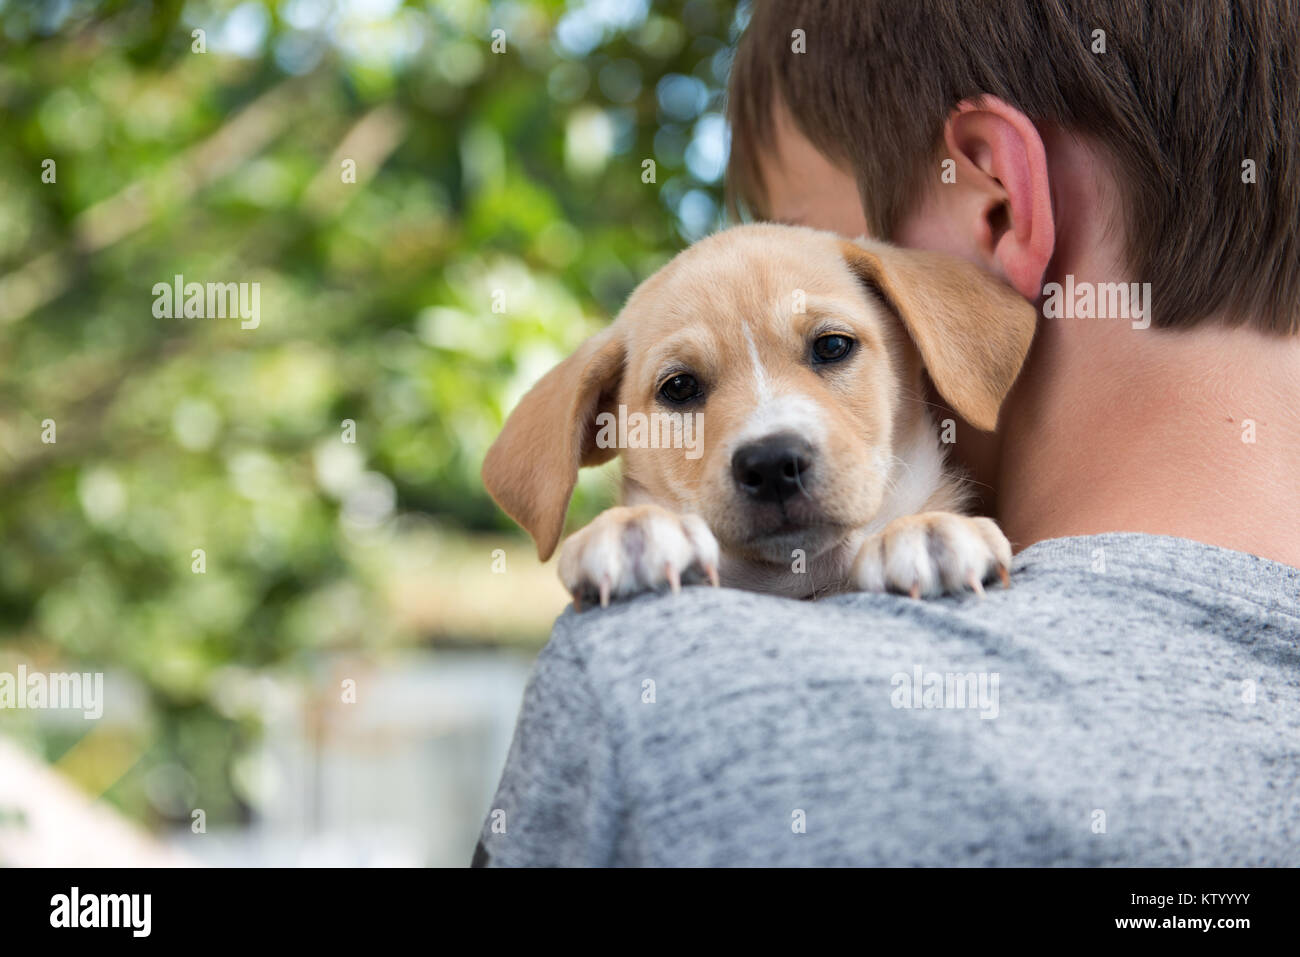 Tiny Little Puppy Being Held in Arms - Stock Image